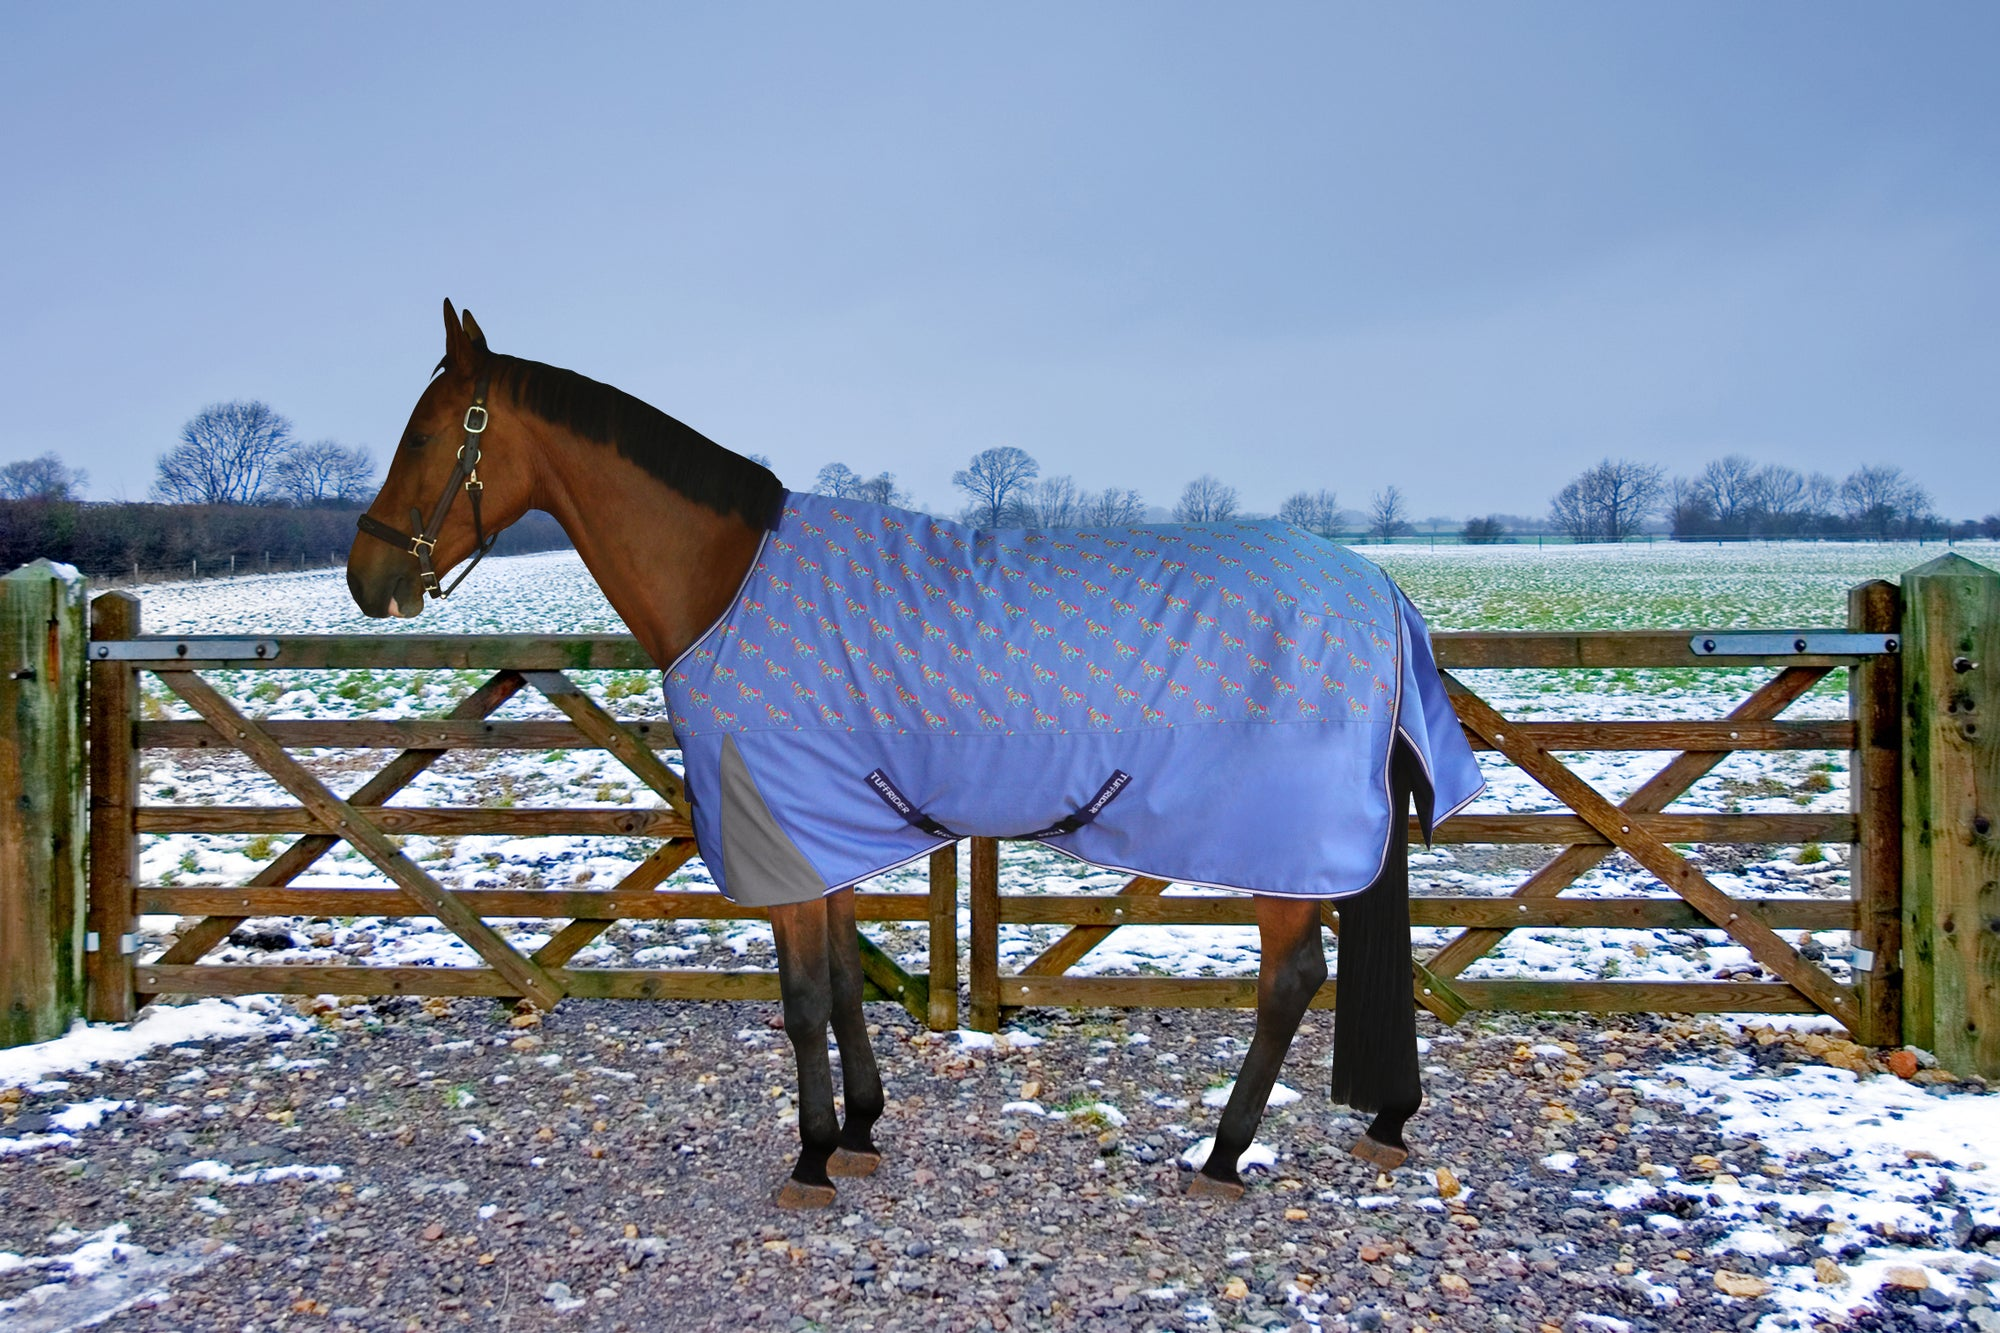 TuffRider 1200D Ripstop Turnout Blanket with 220gms Medium Weight - Adorable Horse Print - TuffRider - Breeches.com